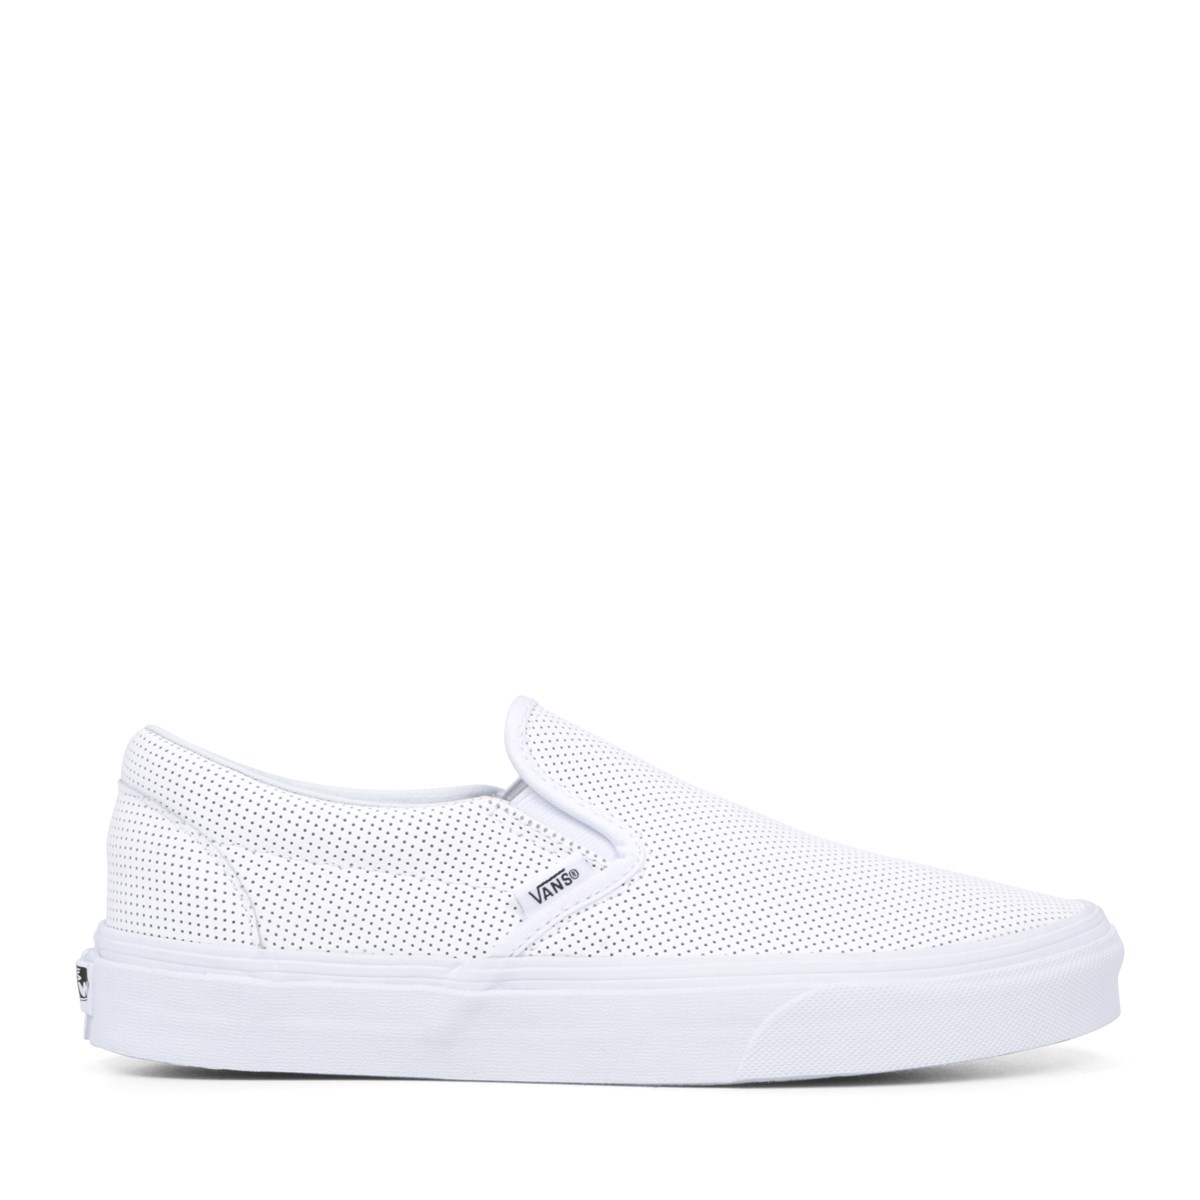 Women's Classic Perforated Leather Slip-On